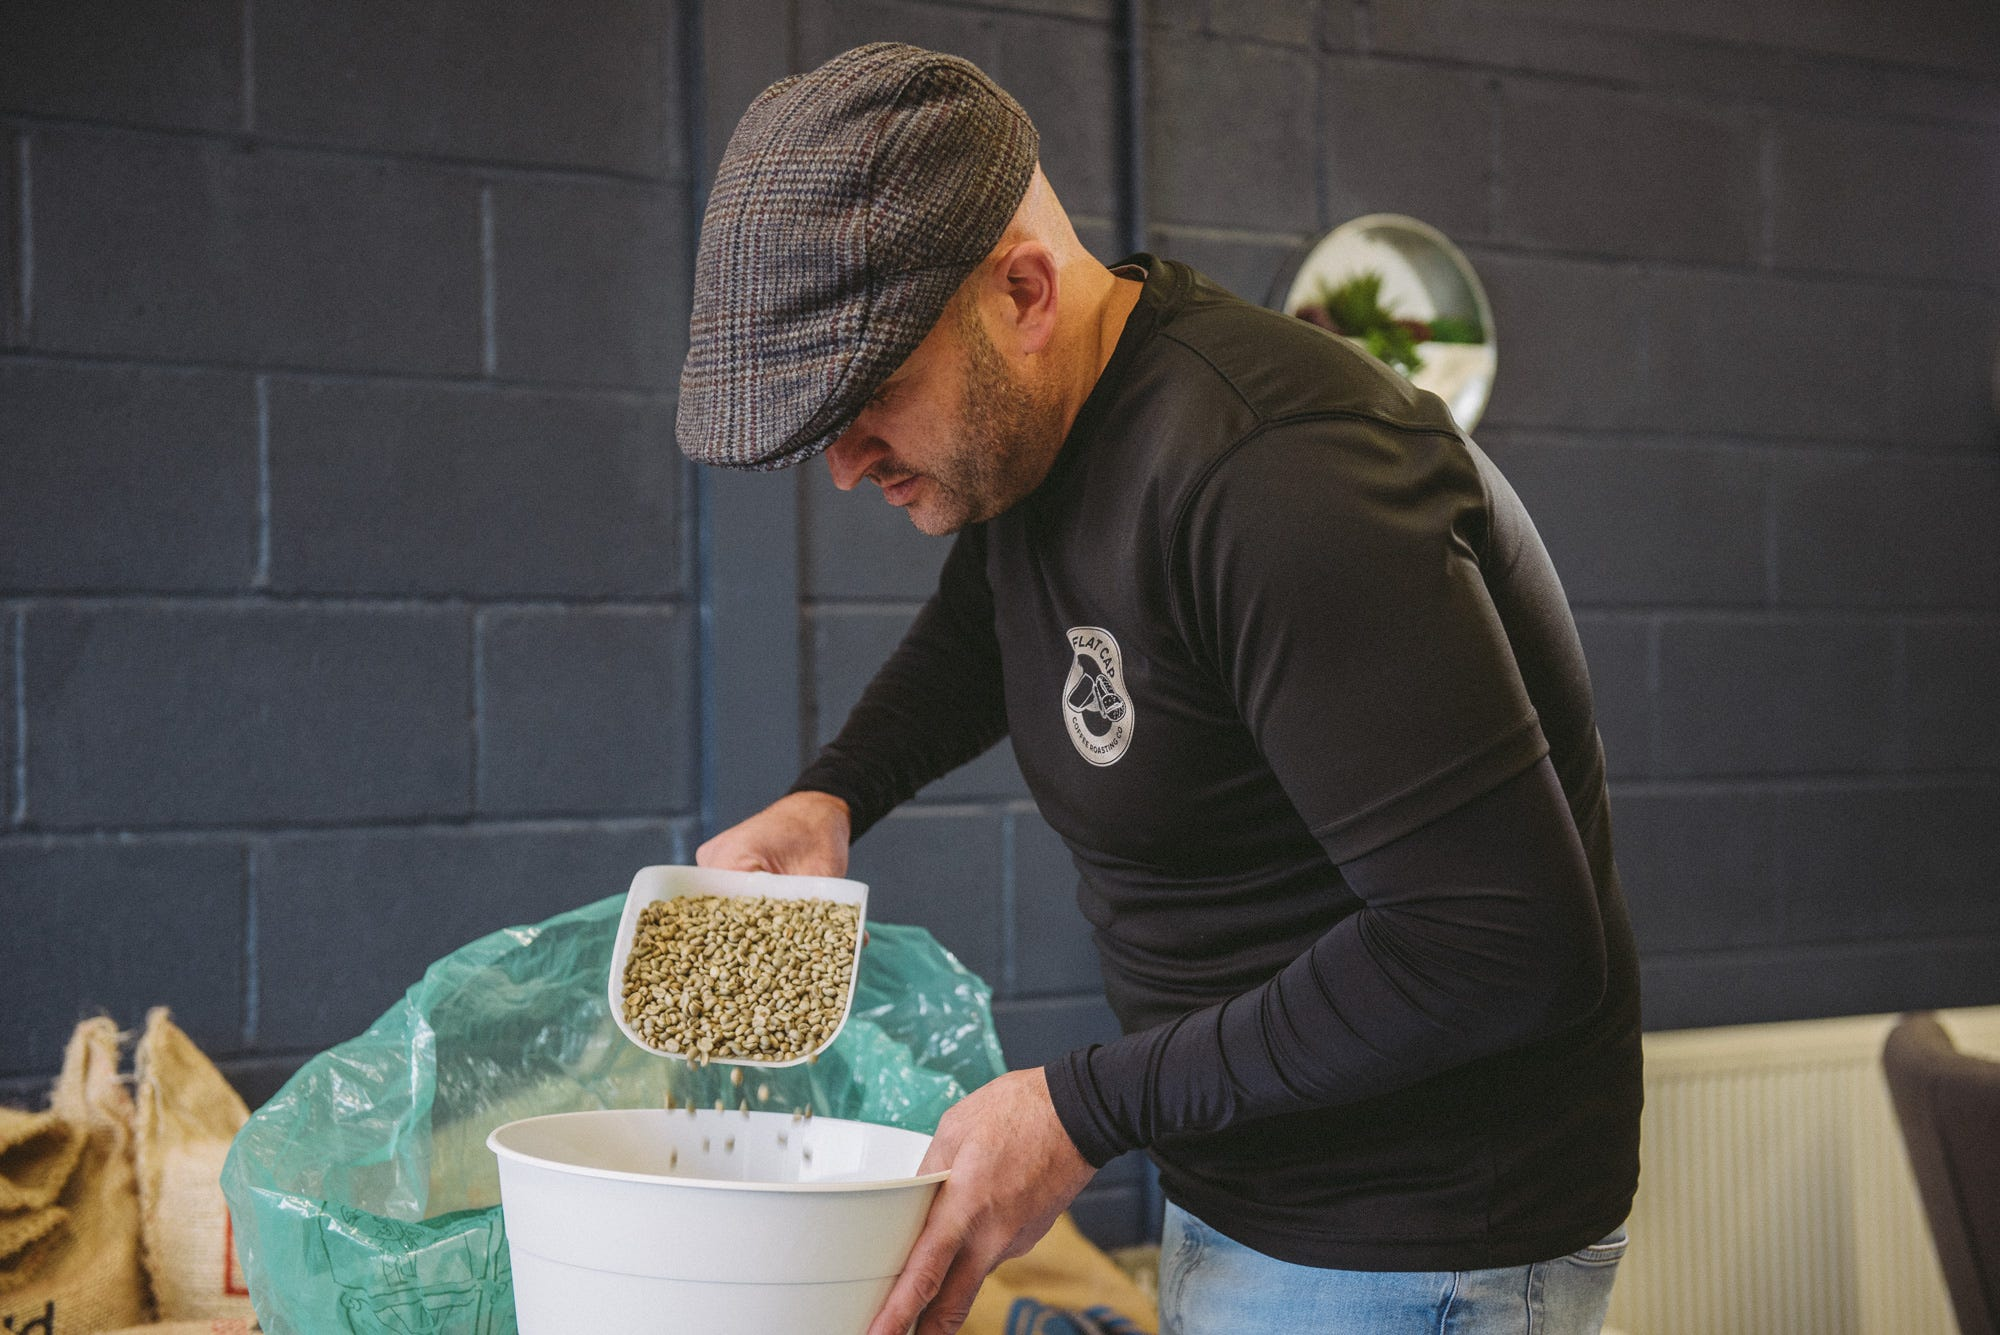 Mark of Flat Cap Coffee Roasting Co. pouring coffee beans into a drum